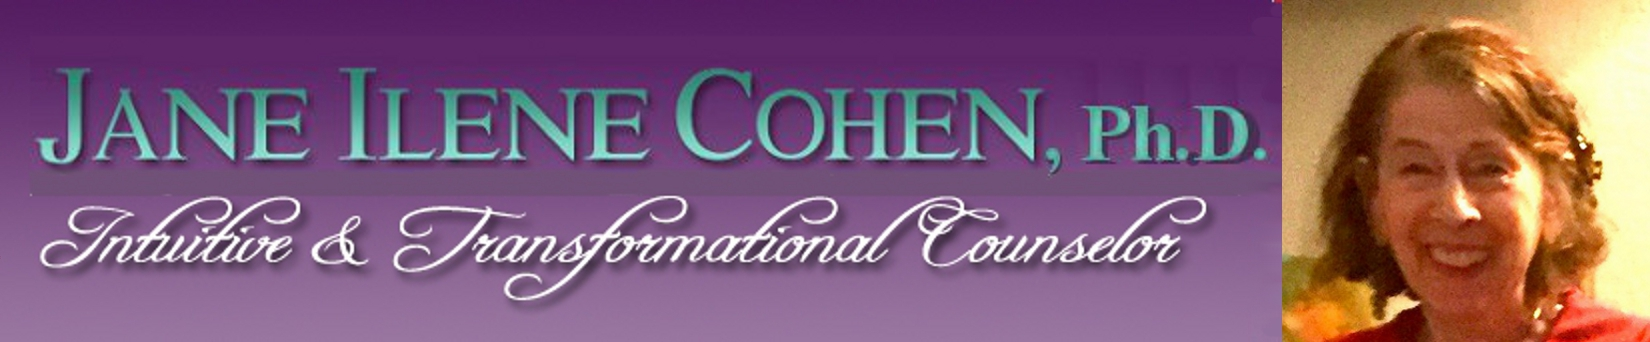 Jane Ilene Cohen, Ph.D., Intuitive & Transformational Counselor, NLP & TimeLine Master Practitioner, Jane Cohen Counseling